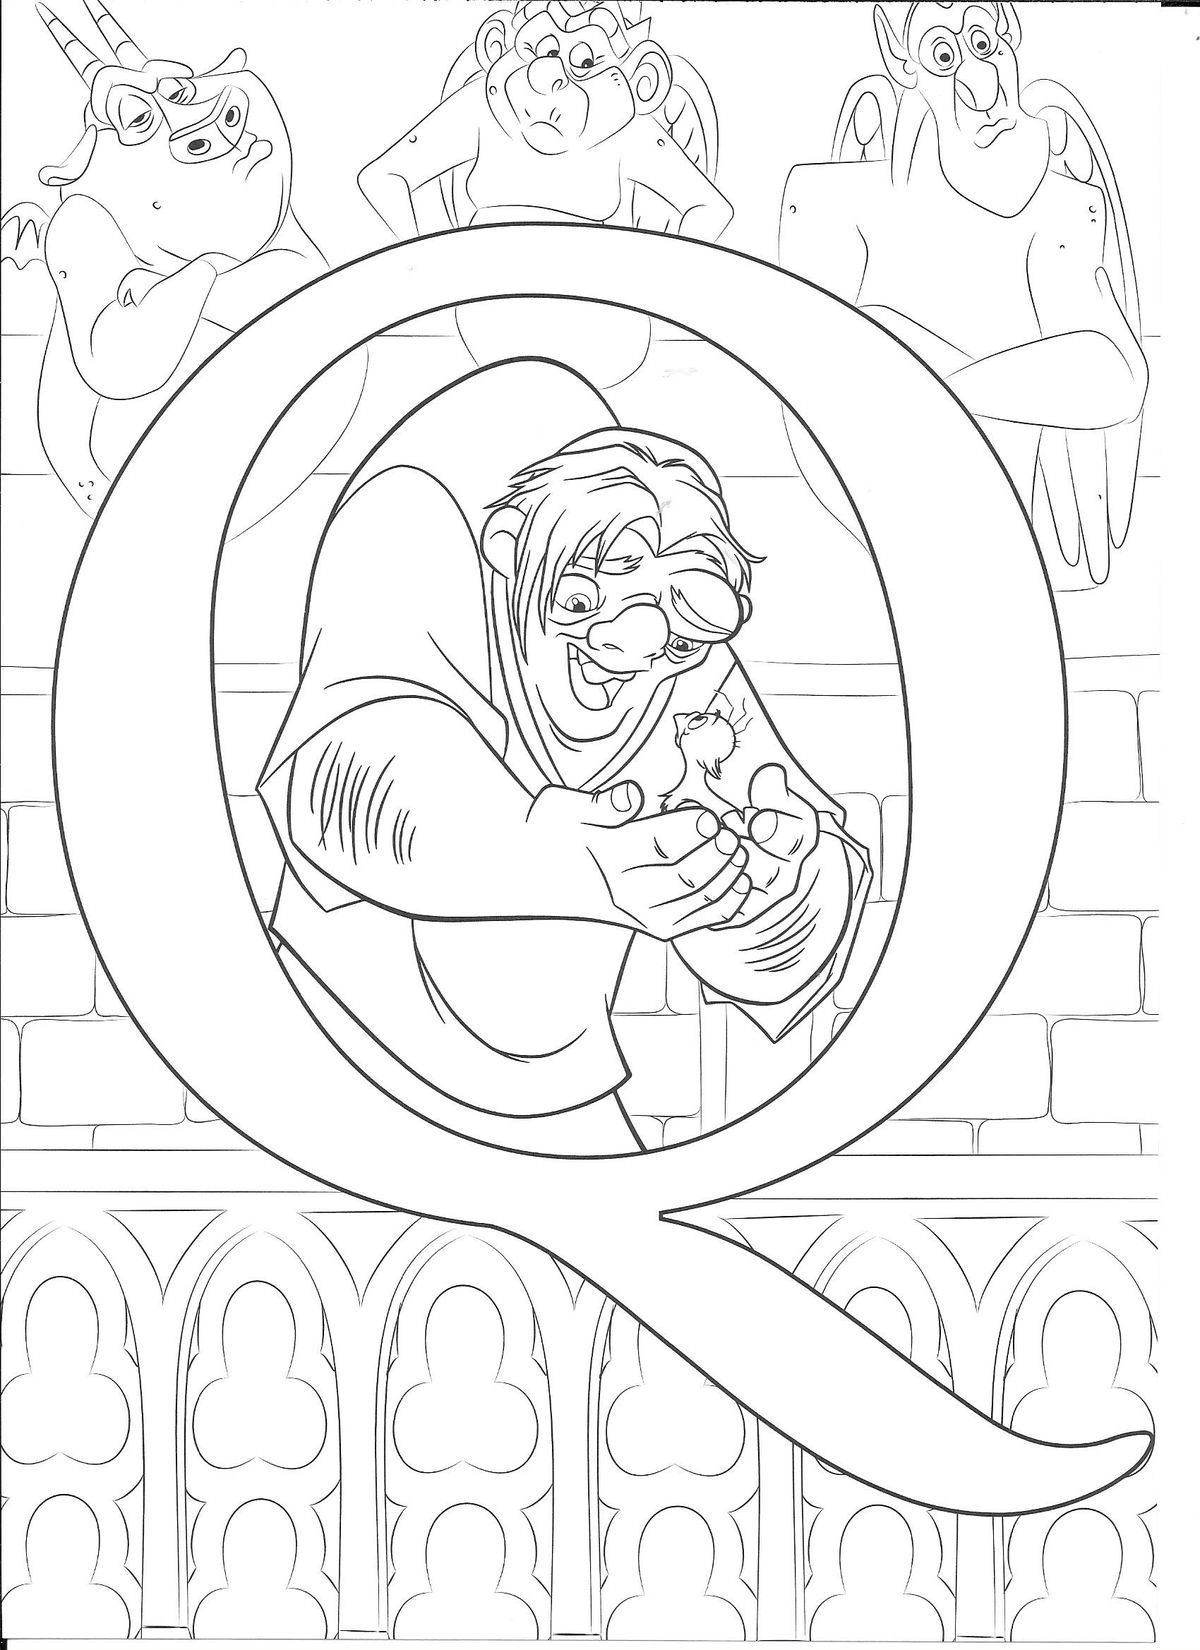 Disney Coloring Pages Pdf Alphabet on a budget